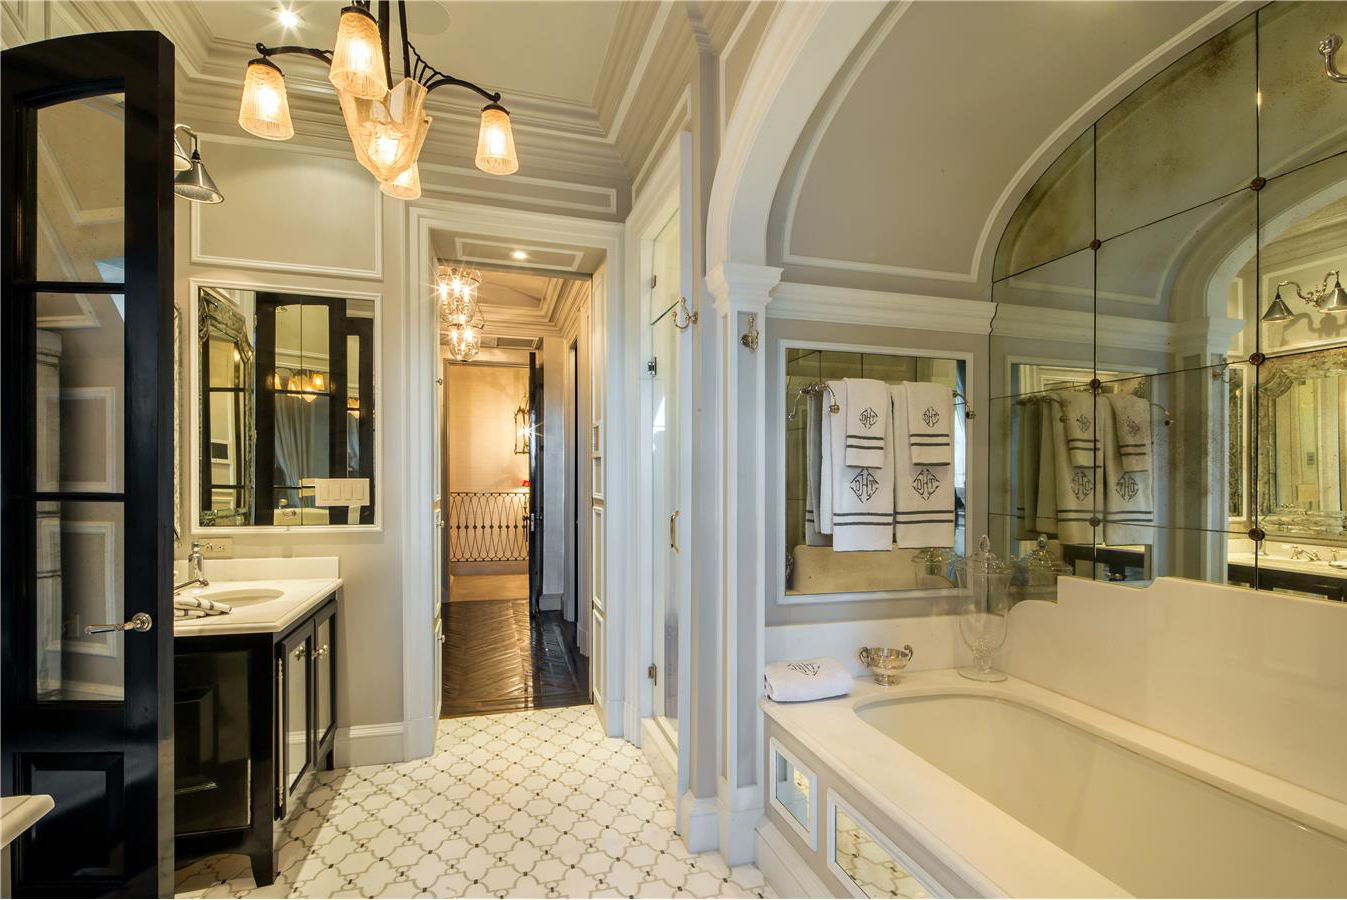 The master bathroom is a luxurious retreat.